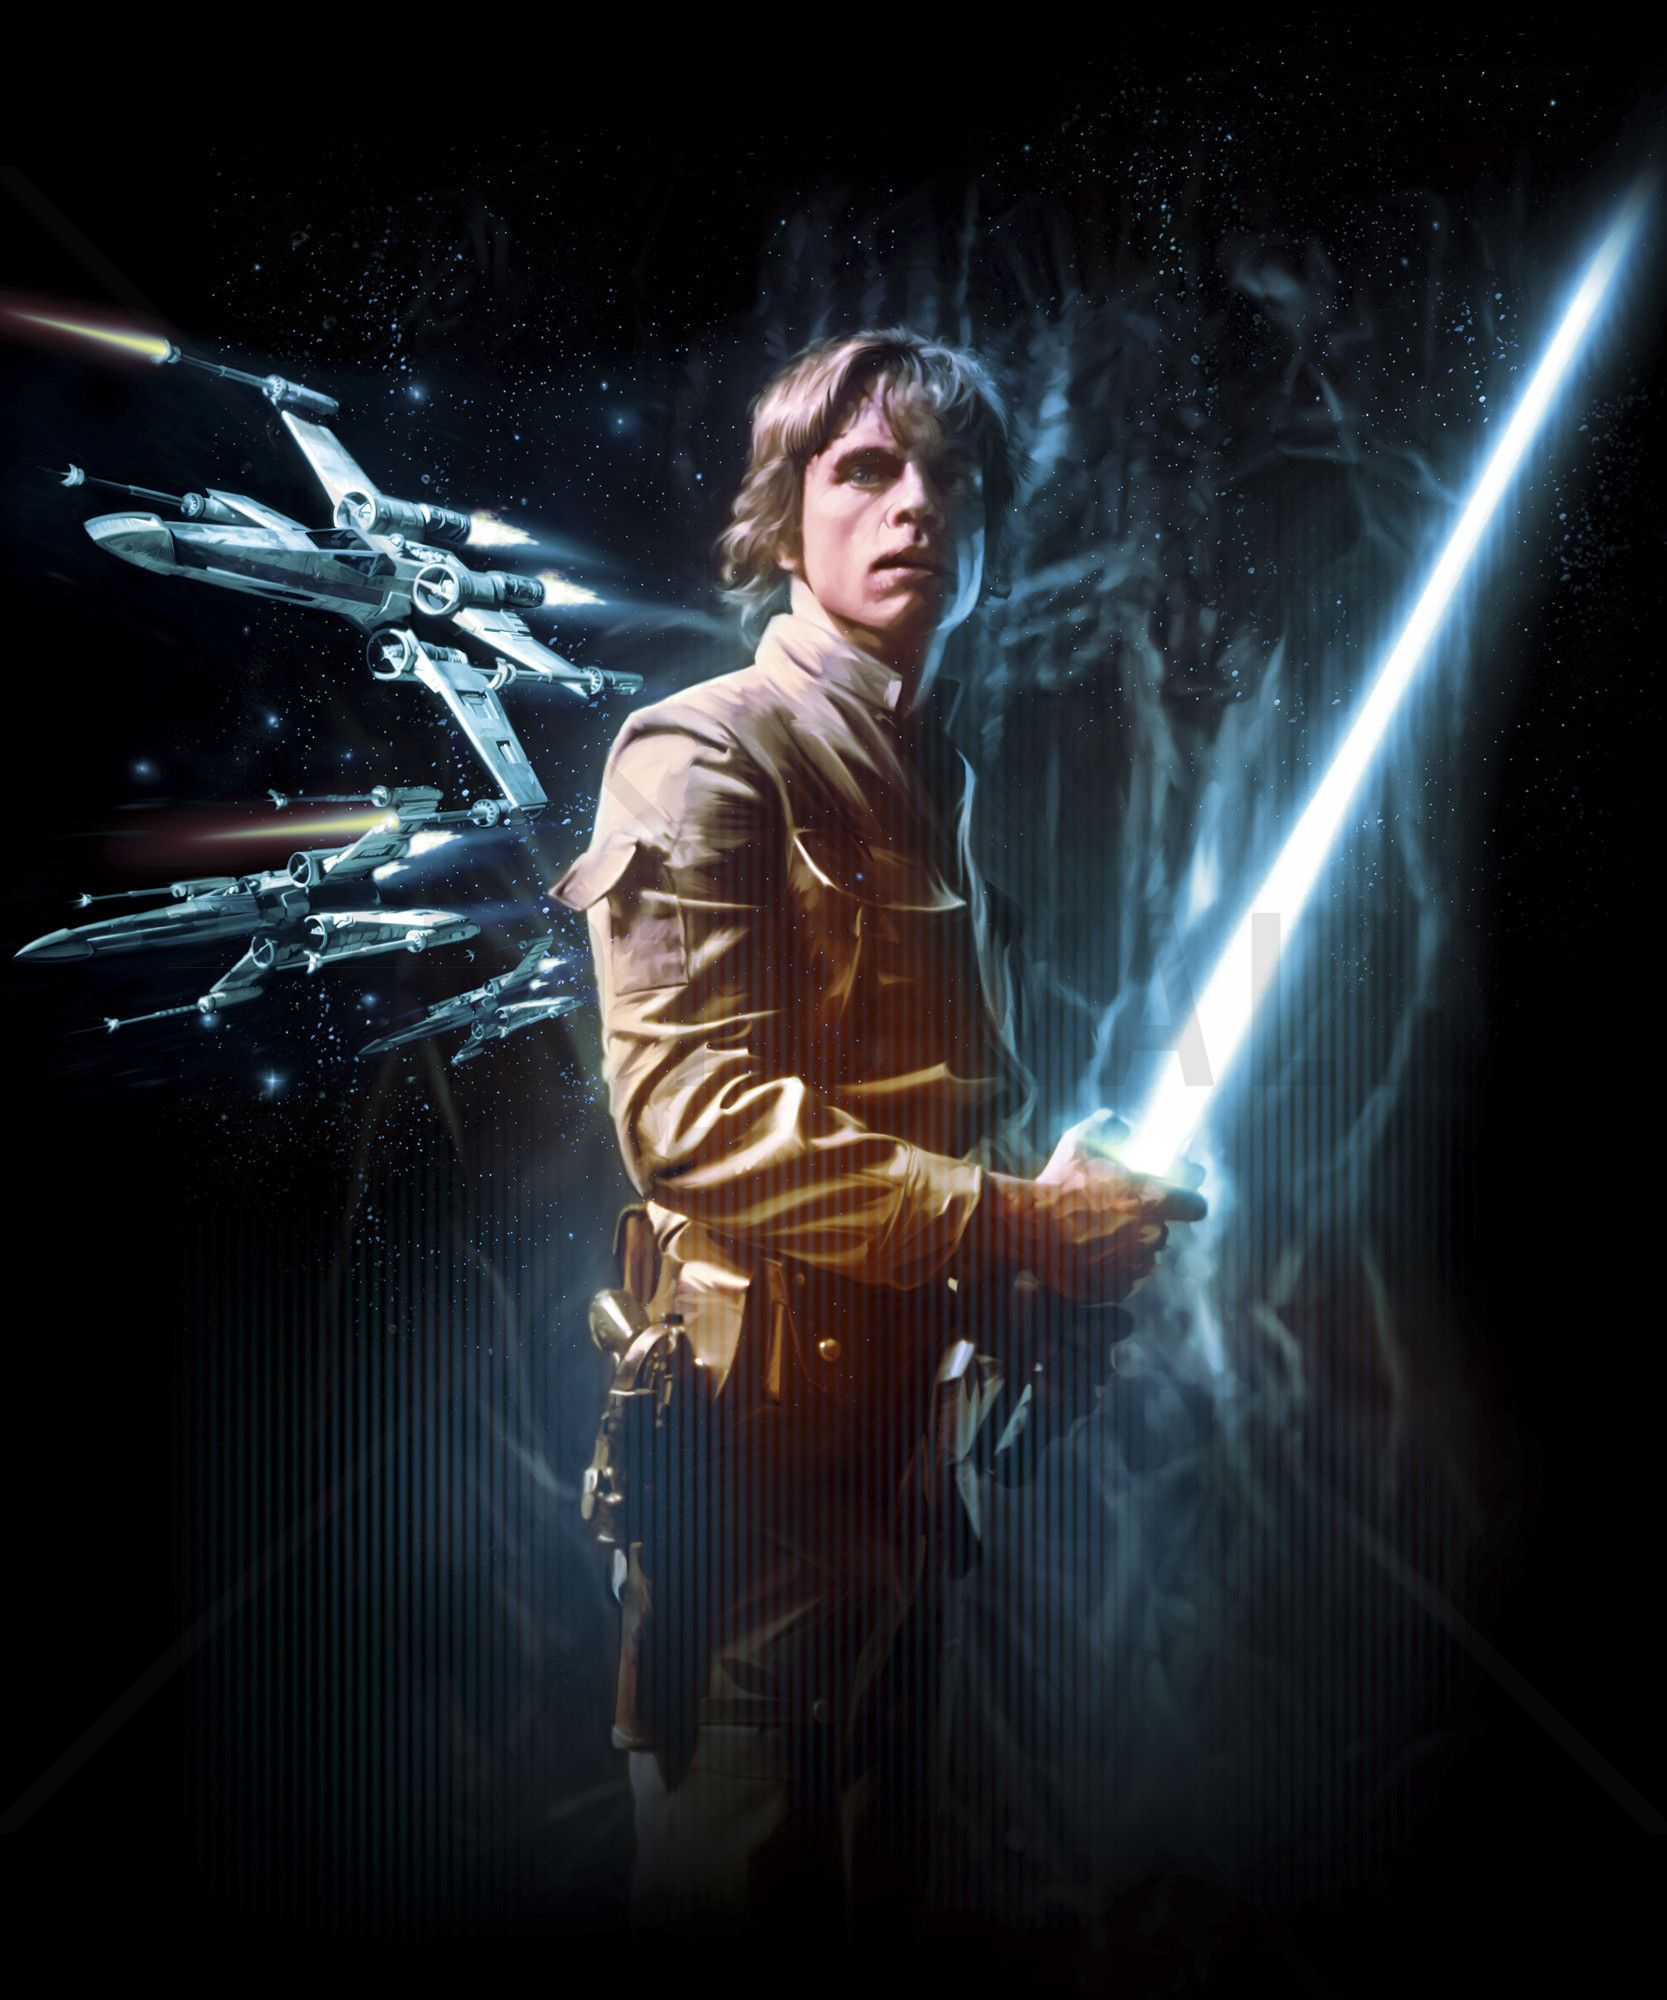 Luke Skywalker Wallpapers Top Free Luke Skywalker Backgrounds